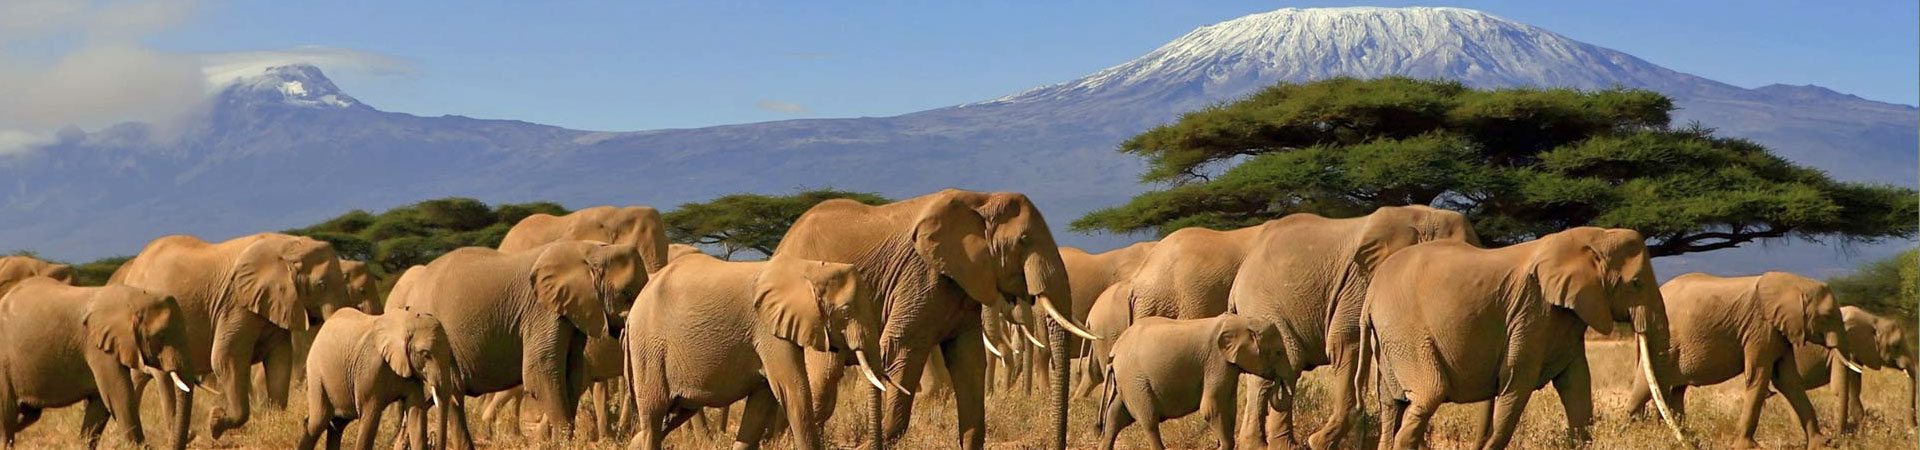 Kenya's-Family-Safari---Best-for-teens-9-Days..